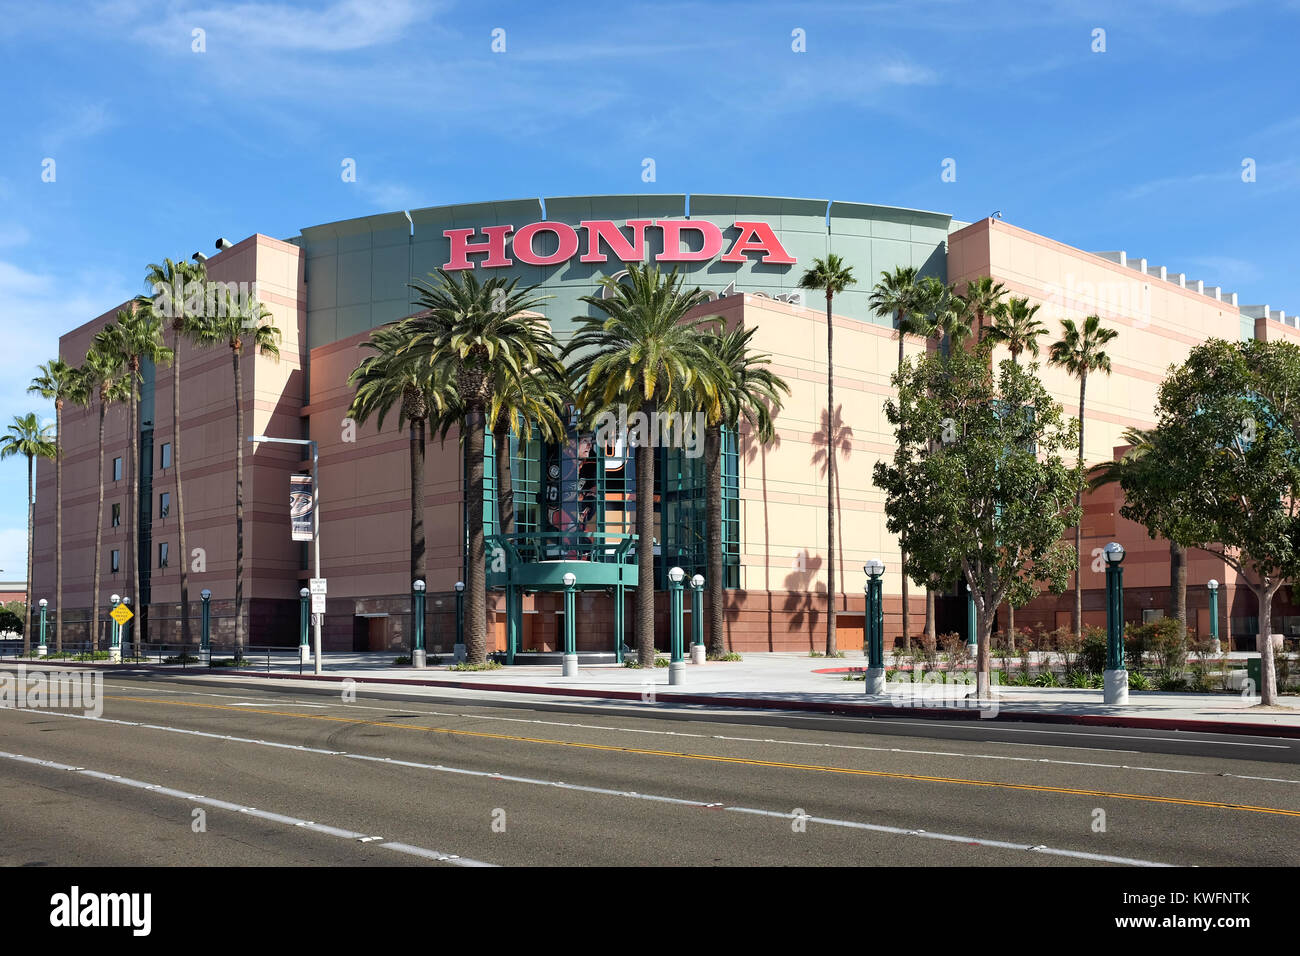 ANAHEIM, CA, 11 De Fevereiro, 2015: O Honda Center, Em Anaheim, Na  Califórnia.A Arena é Casa Para O Anaheim Ducks Da National Hockey League  (NHL) E O L